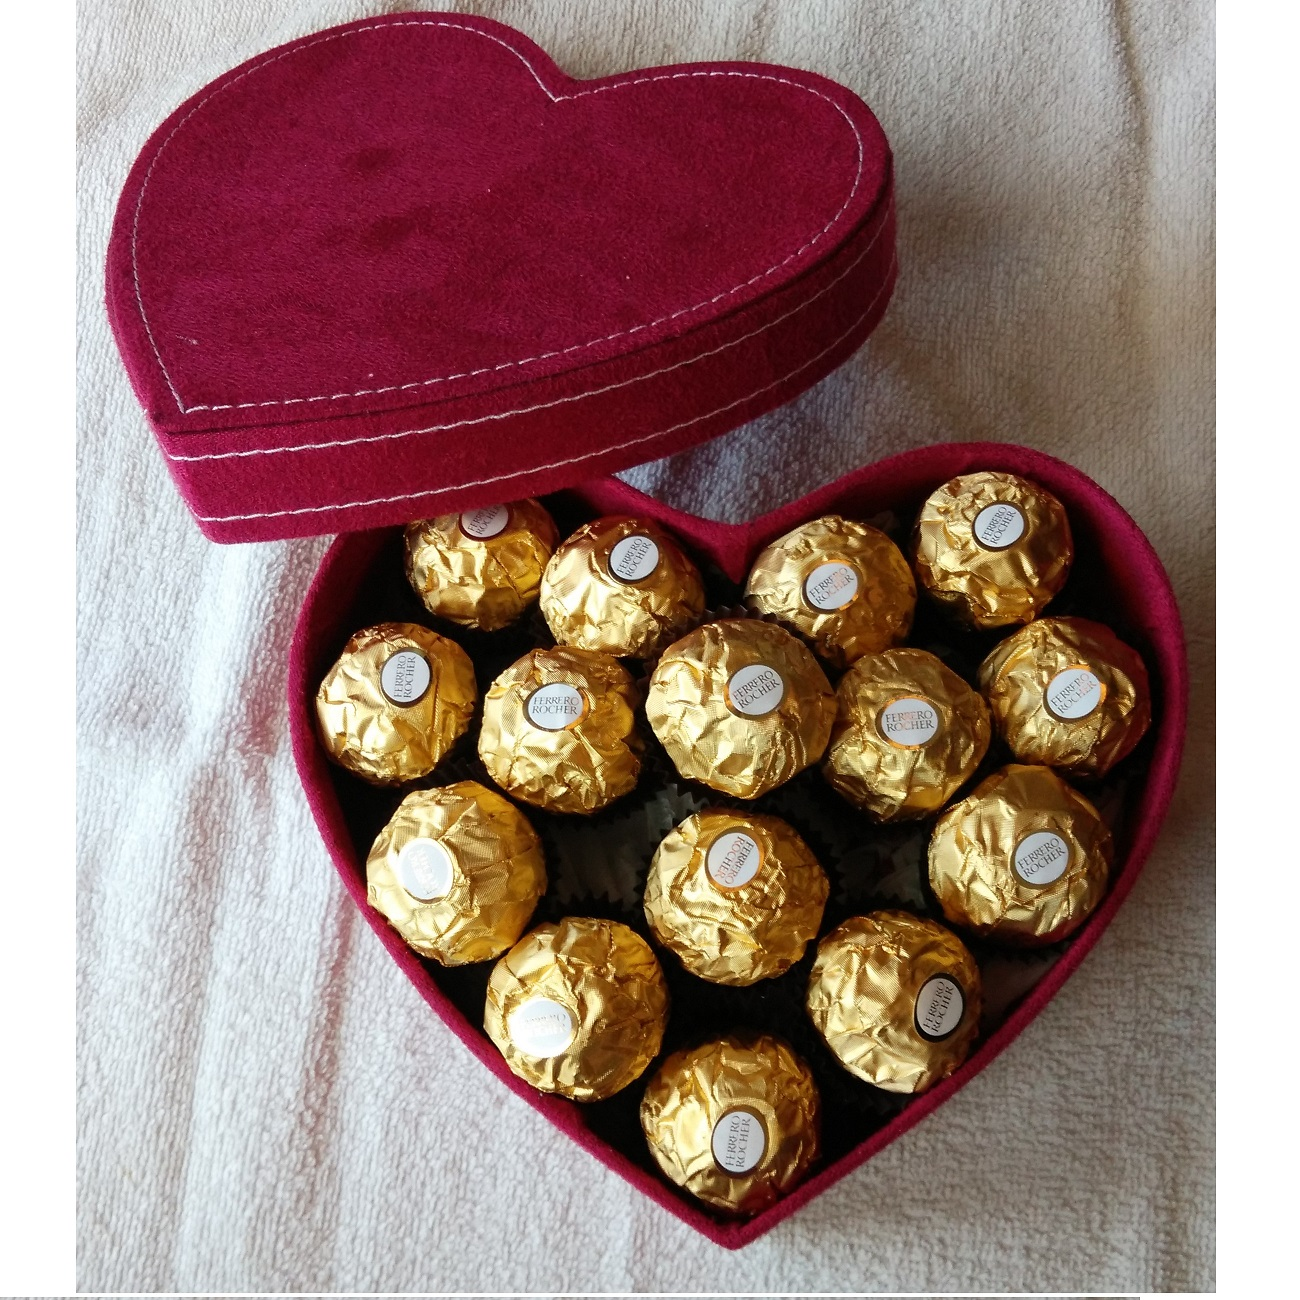 Buy Ferrero Rocher Chocolate Gift Box For Valentines Day Deals For